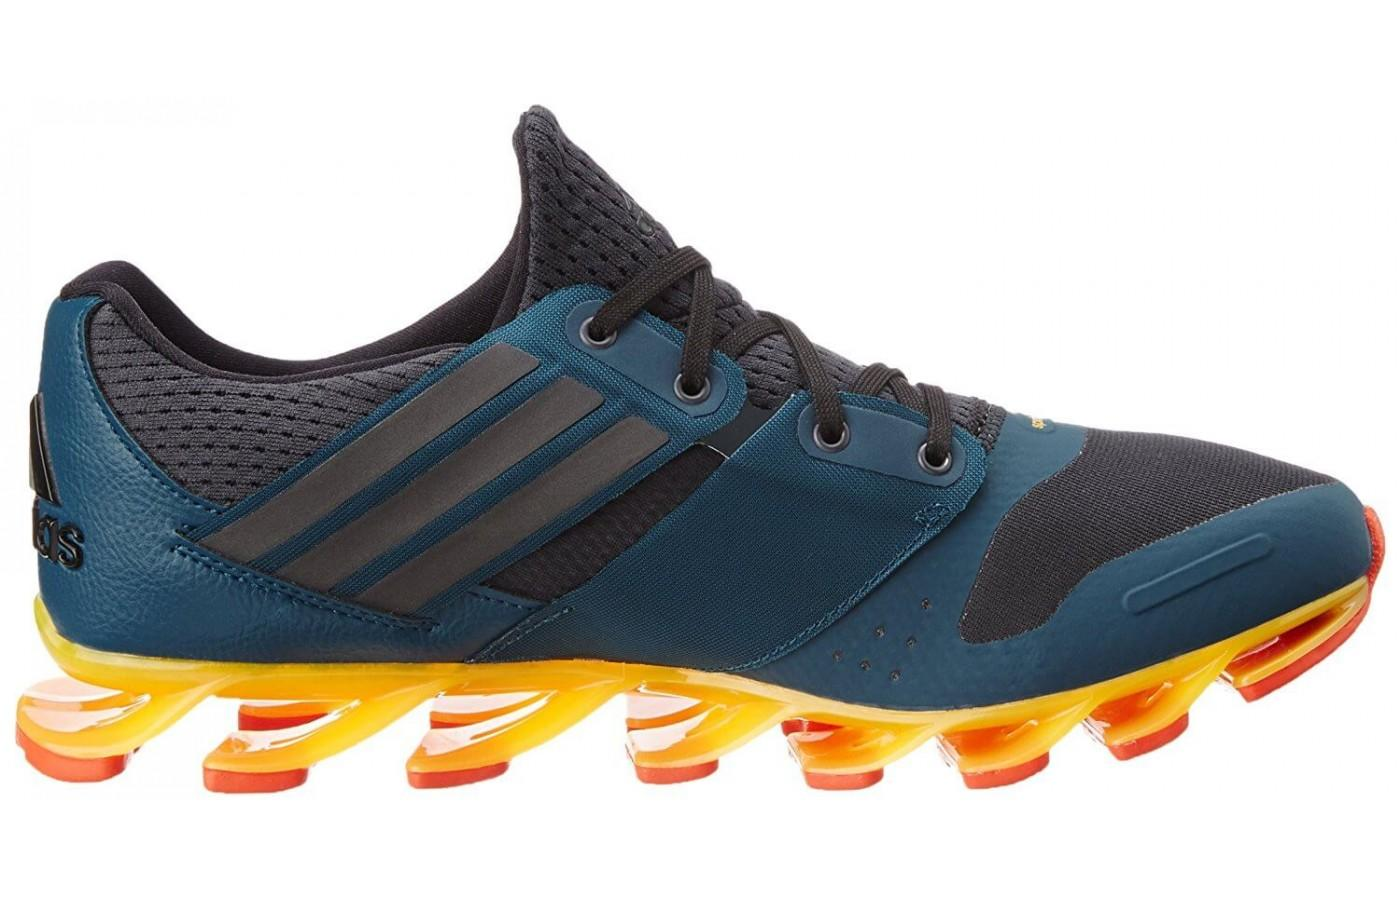 info for d153a ec822 ... Unique outsole engineering of the Adidas Springblade solyce ...